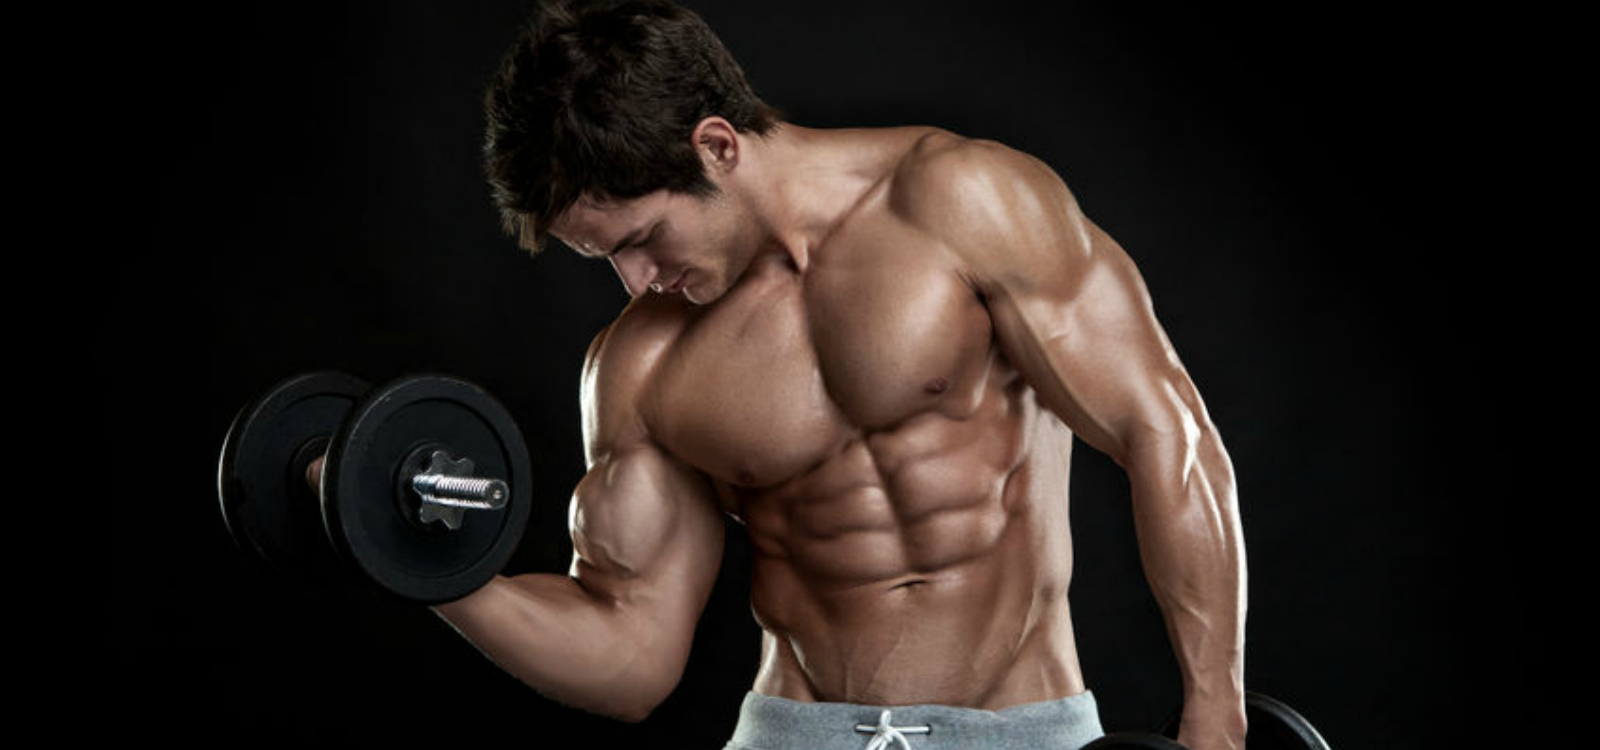 How to Get Bigger and Stronger Biceps in Just 30 Days